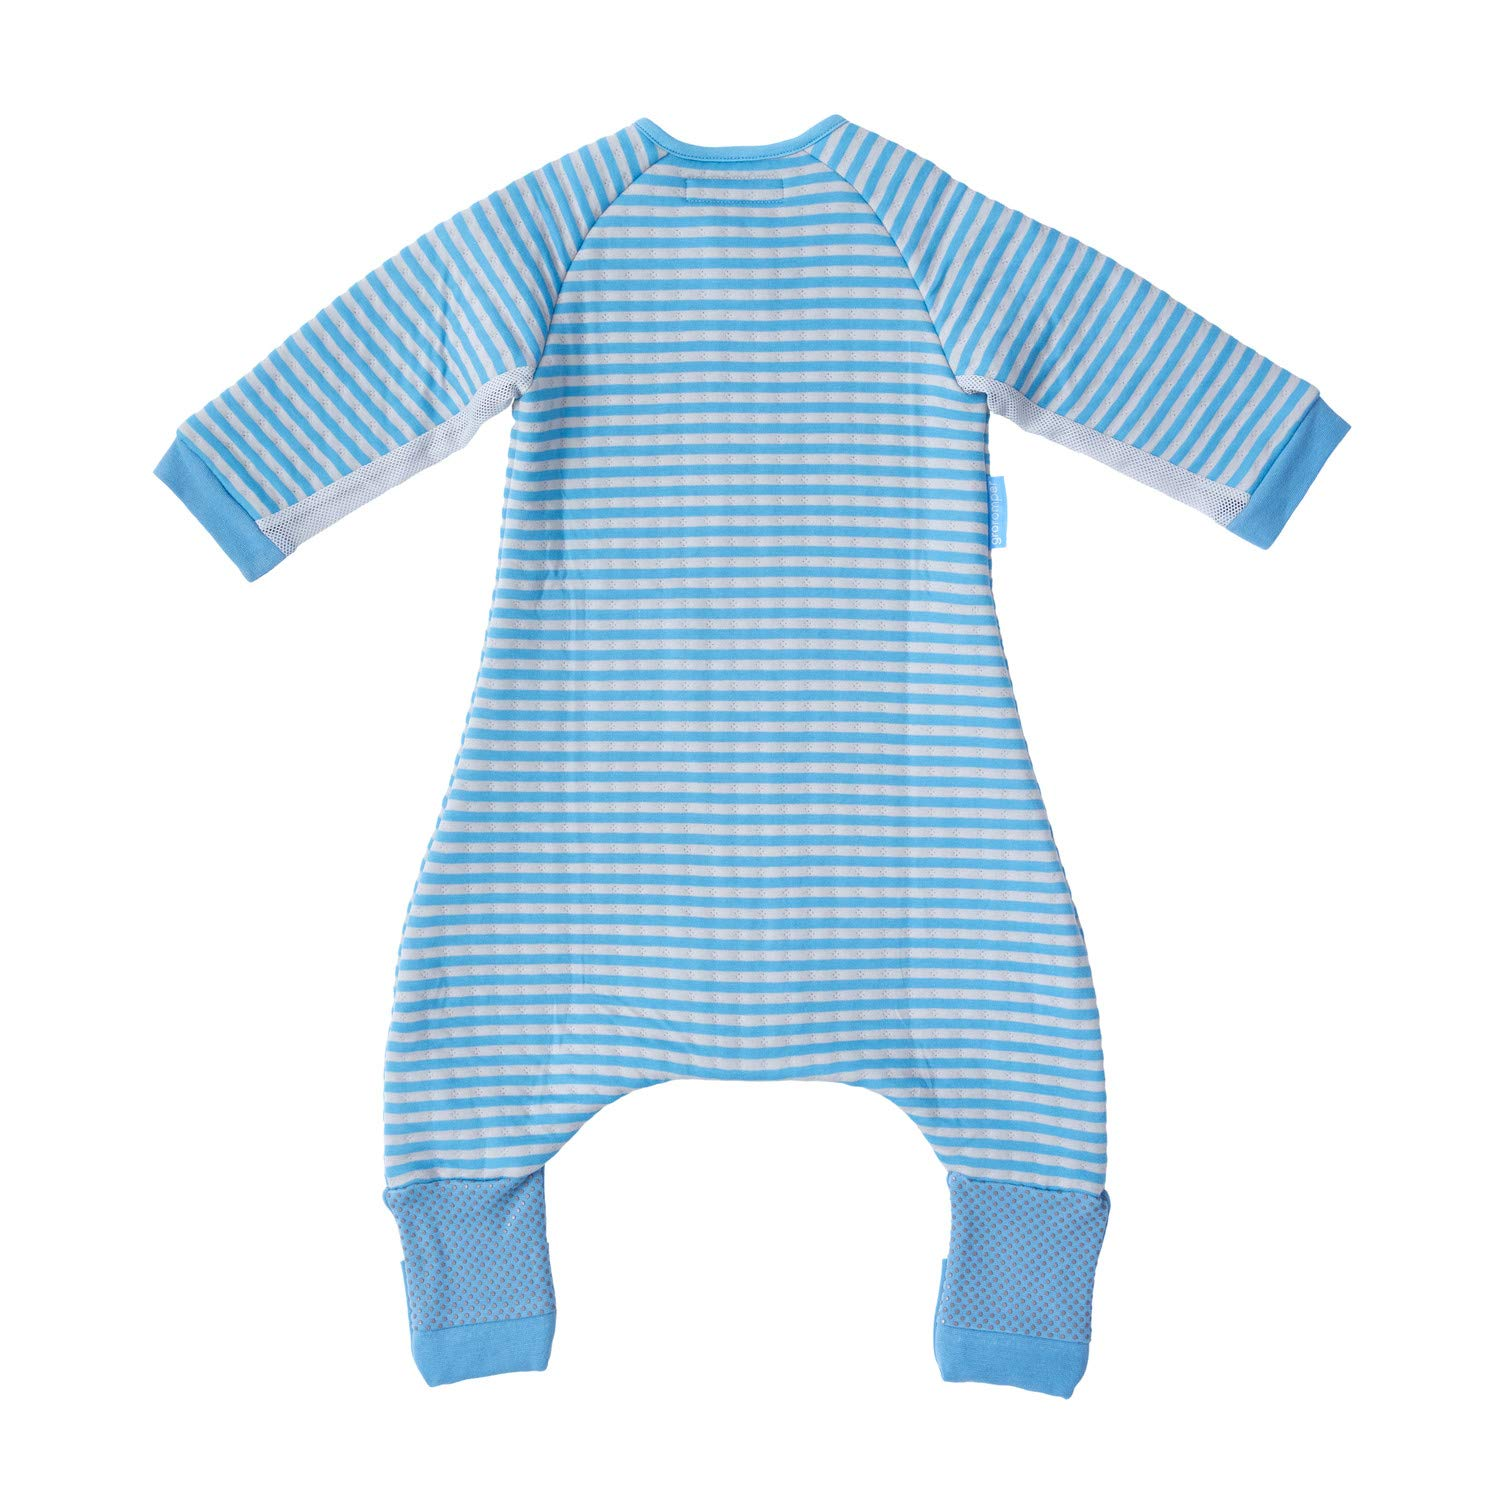 Playsuit /& Sleepsuit 24-36 Months The Gro Company Groromper Cosy Pink Stripe